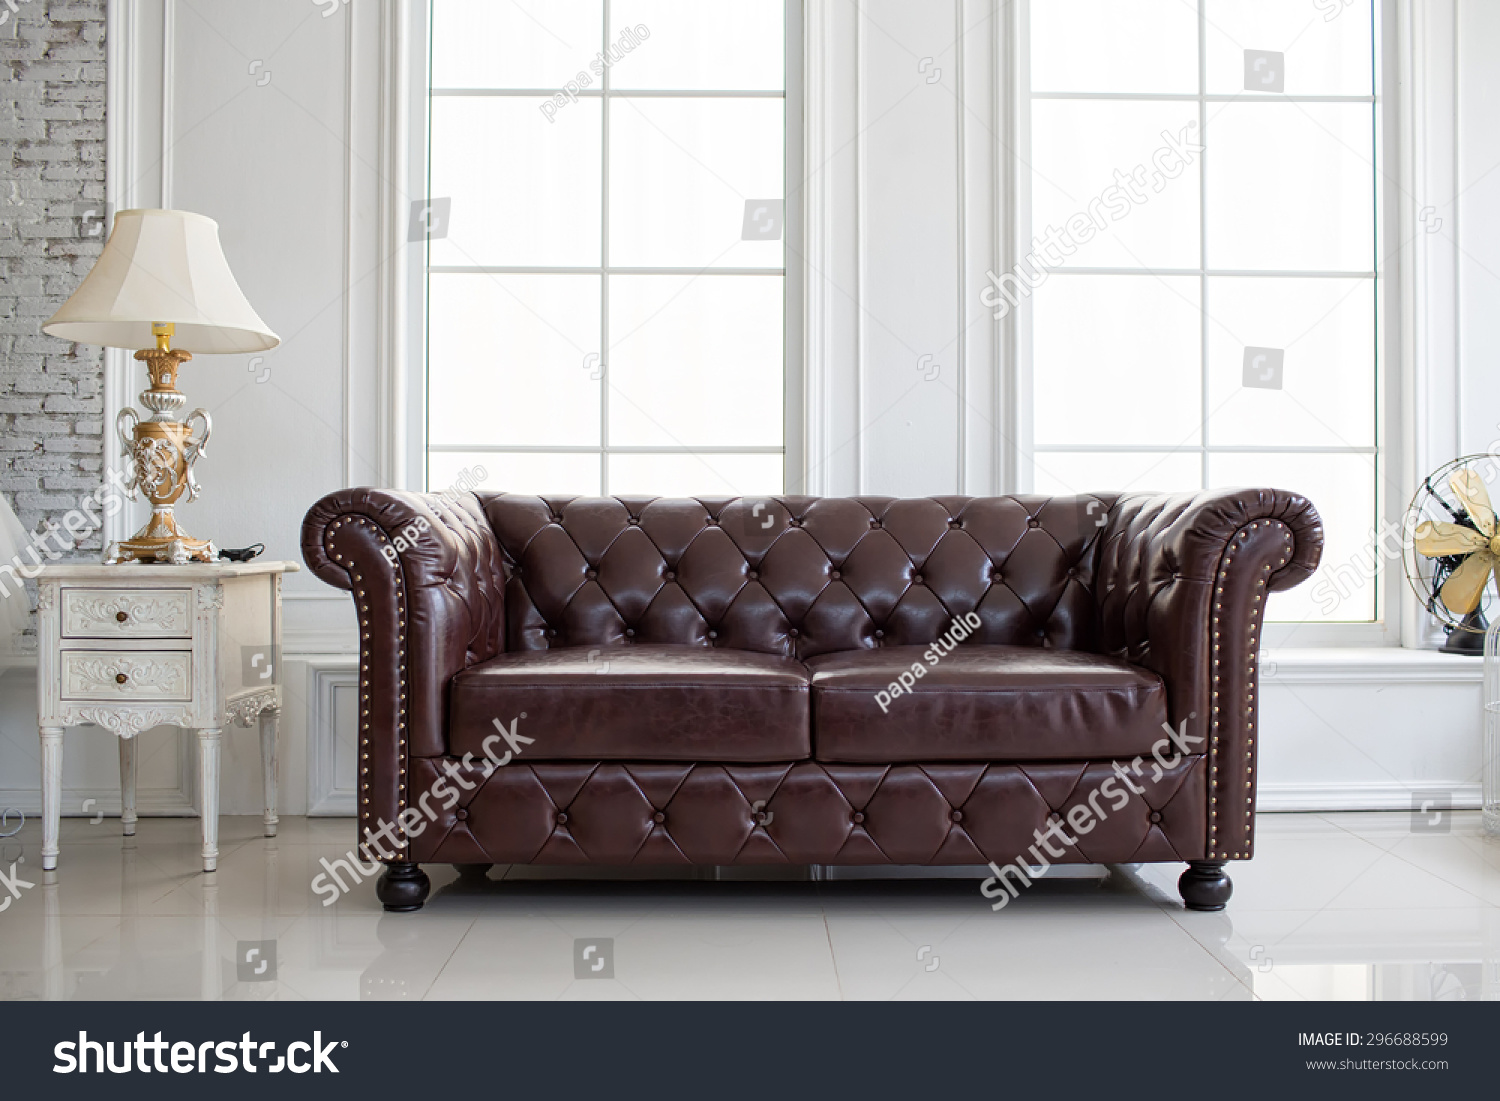 Vintage Style Interior Decoration Leather Sofa Stock Photo  ~ Leather Sofa Vintage Style